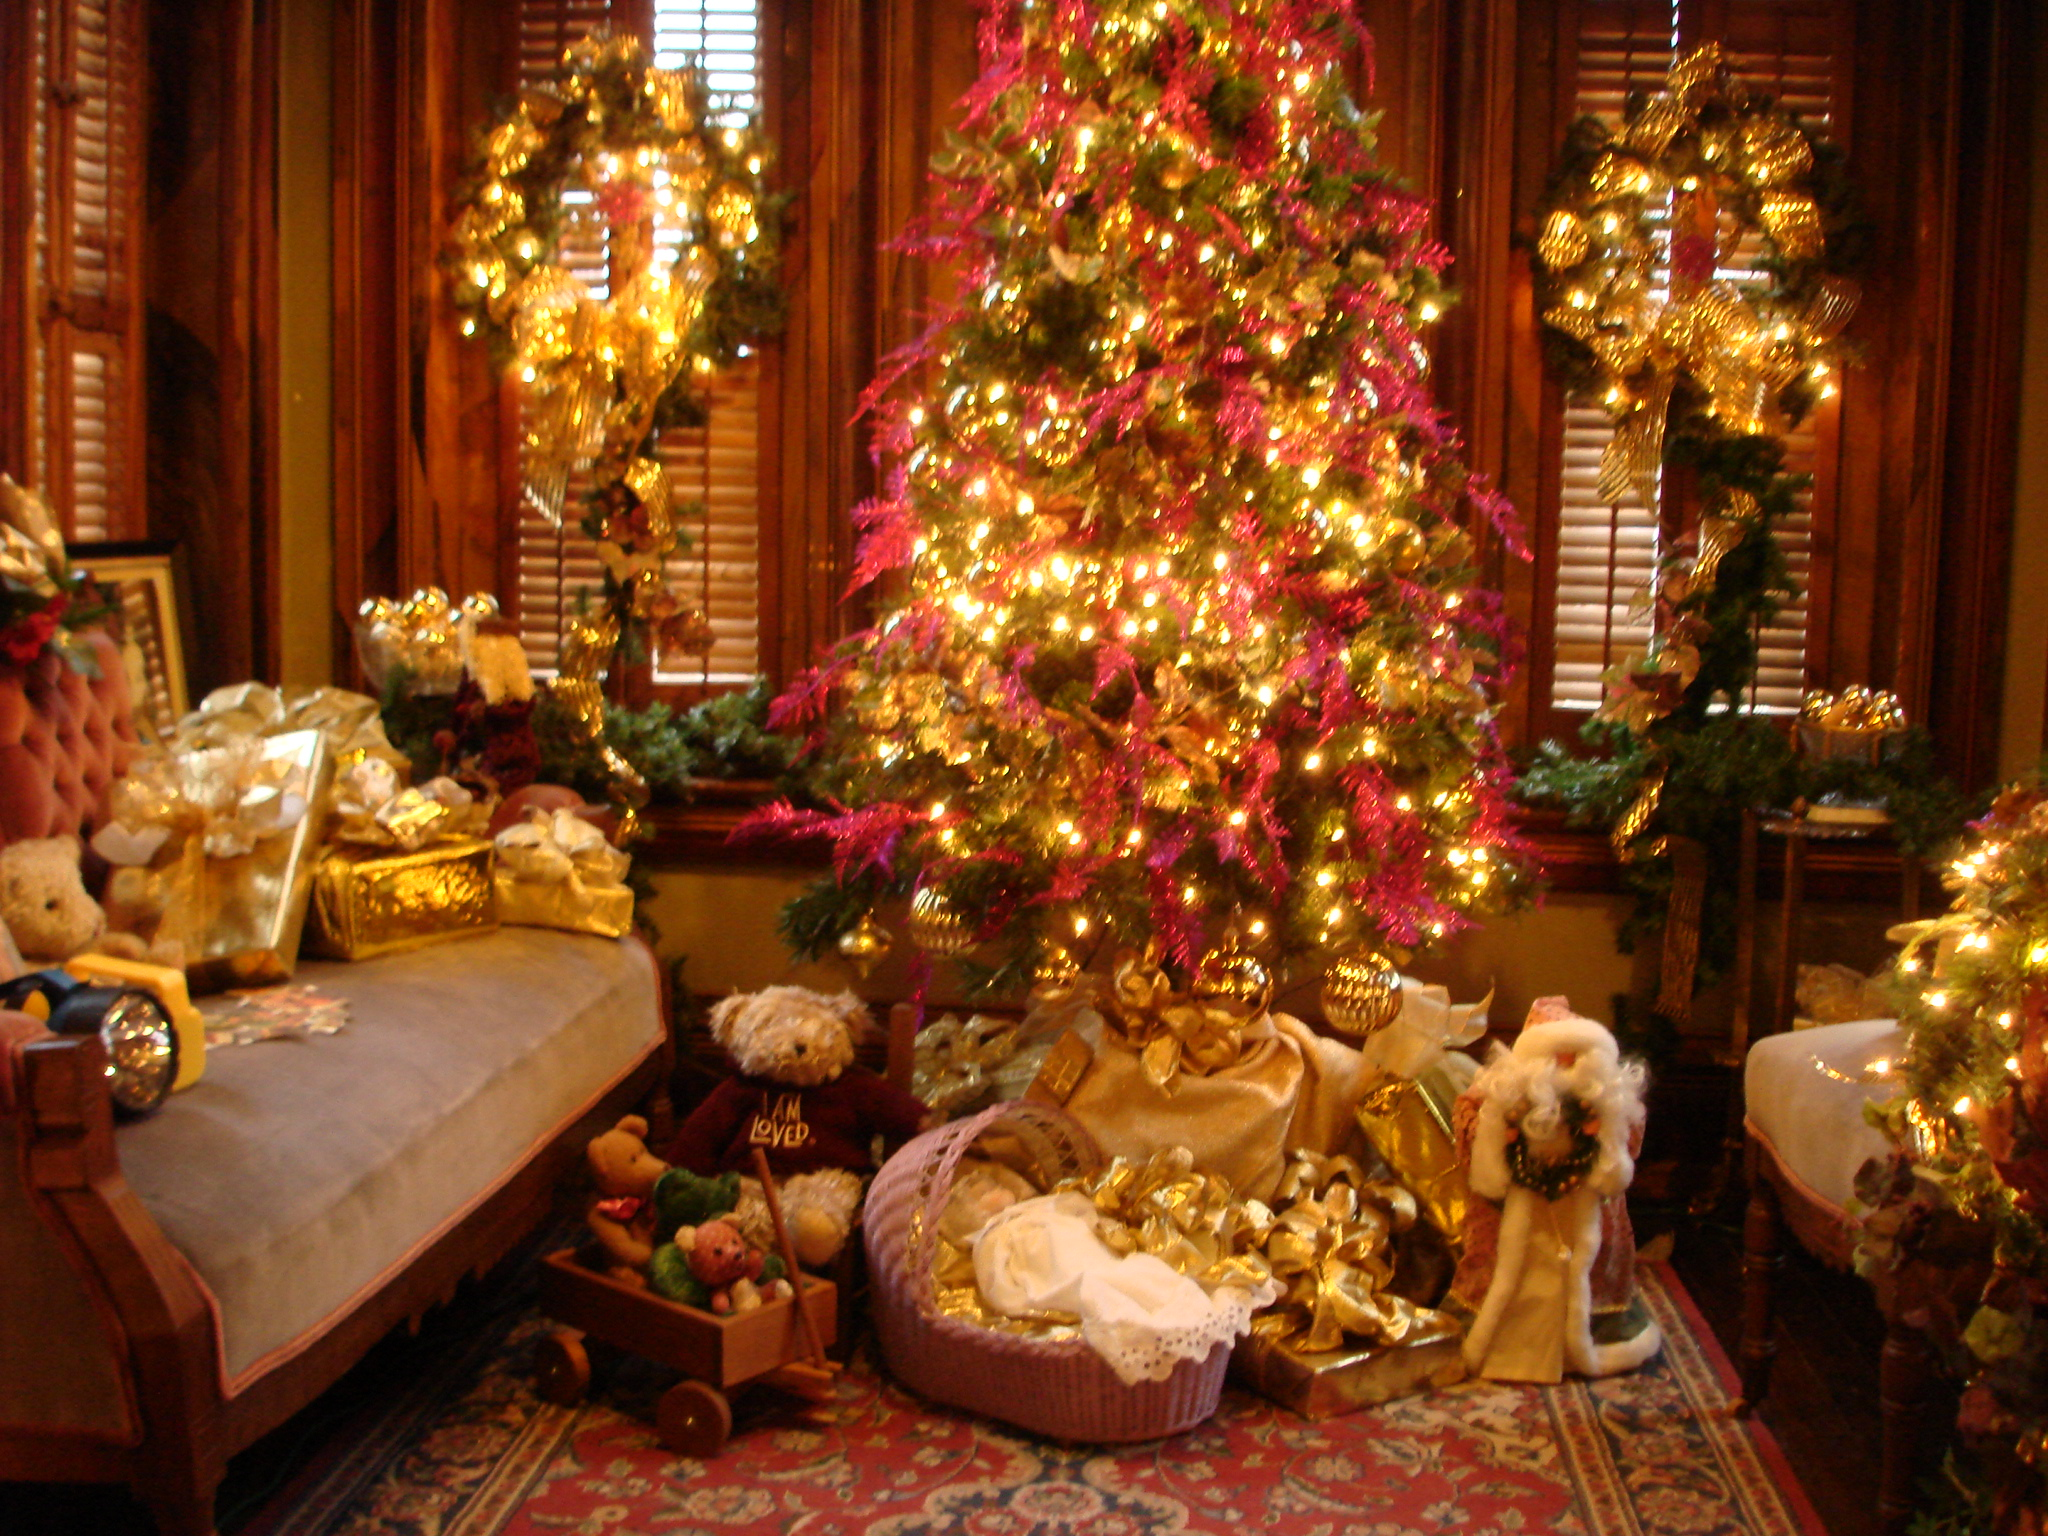 Let Christmas enrich your family, not impoverish it ...